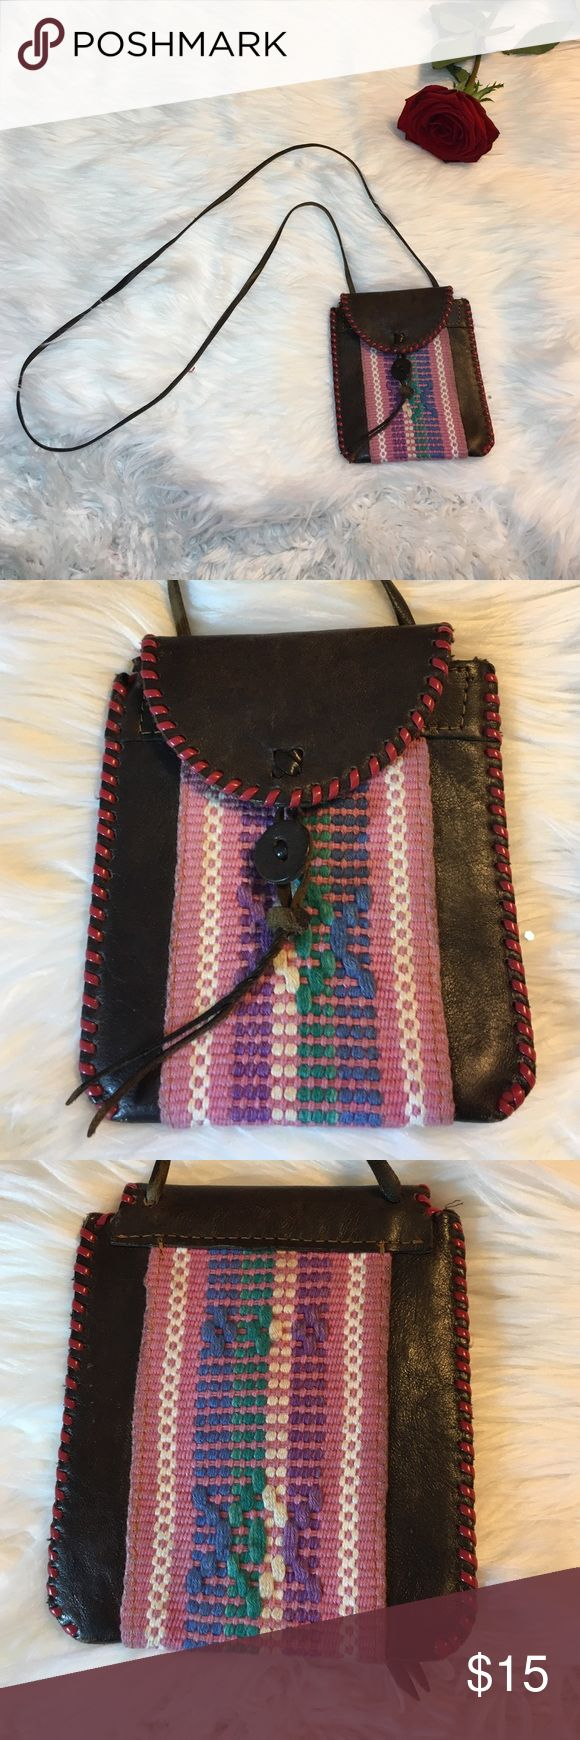 Vintage Leather Bohemian Festival Cross Body Bag -Good condition! Handmade with real leather  -Pre loved item -I do not accept offers in the comments so please make all reasonable offers using the offer button only. :) -NO TRADES  -NO HOLDS 🚫 -I ship every Monday, Wednesday and Friday  -All items are hand washed before they are shipped out   💕Instagram- allisonsbeautyboutique 💕 Your purchase is going to help me graduate community college with as little debt as possible. Thank you! Vintage…